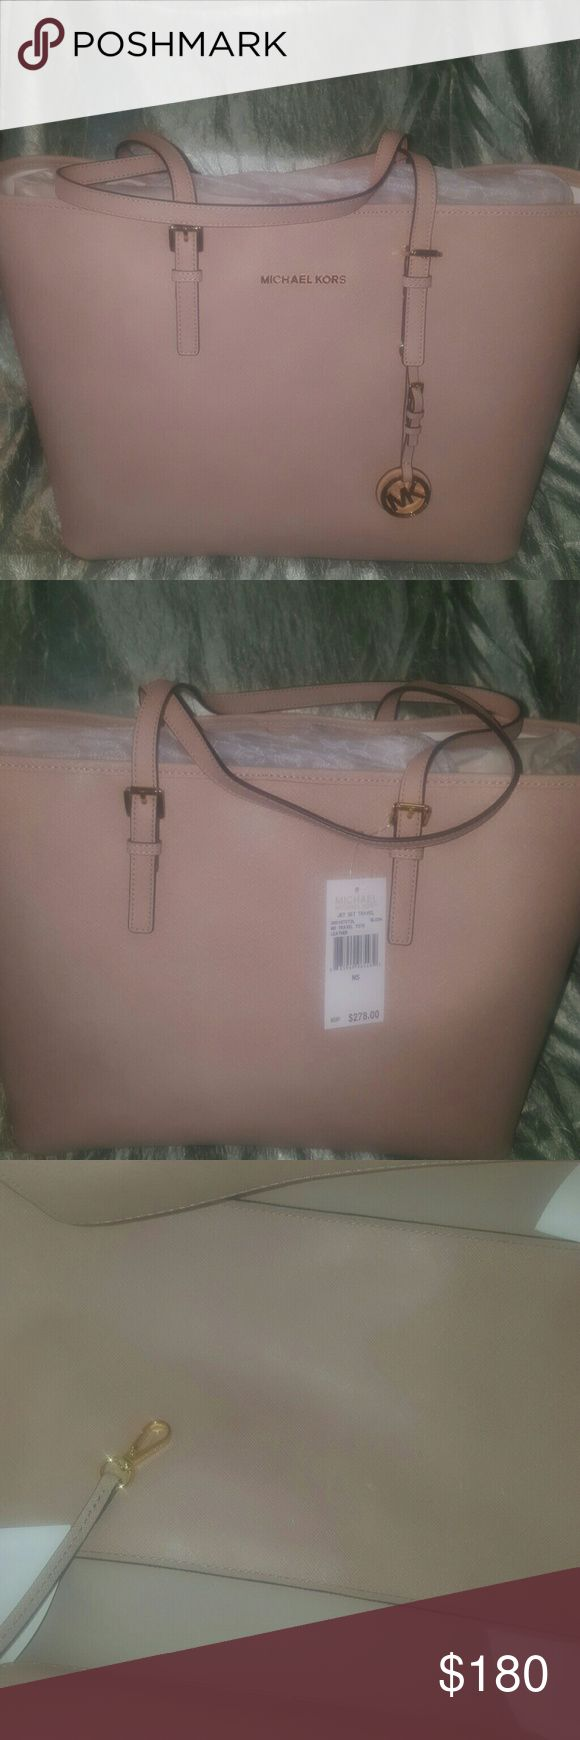 Brand New Authentic Michael Kors Jet Set Tote Brand New Authentic Michael Kors Jet Tote in Blush!!! Bags Totes